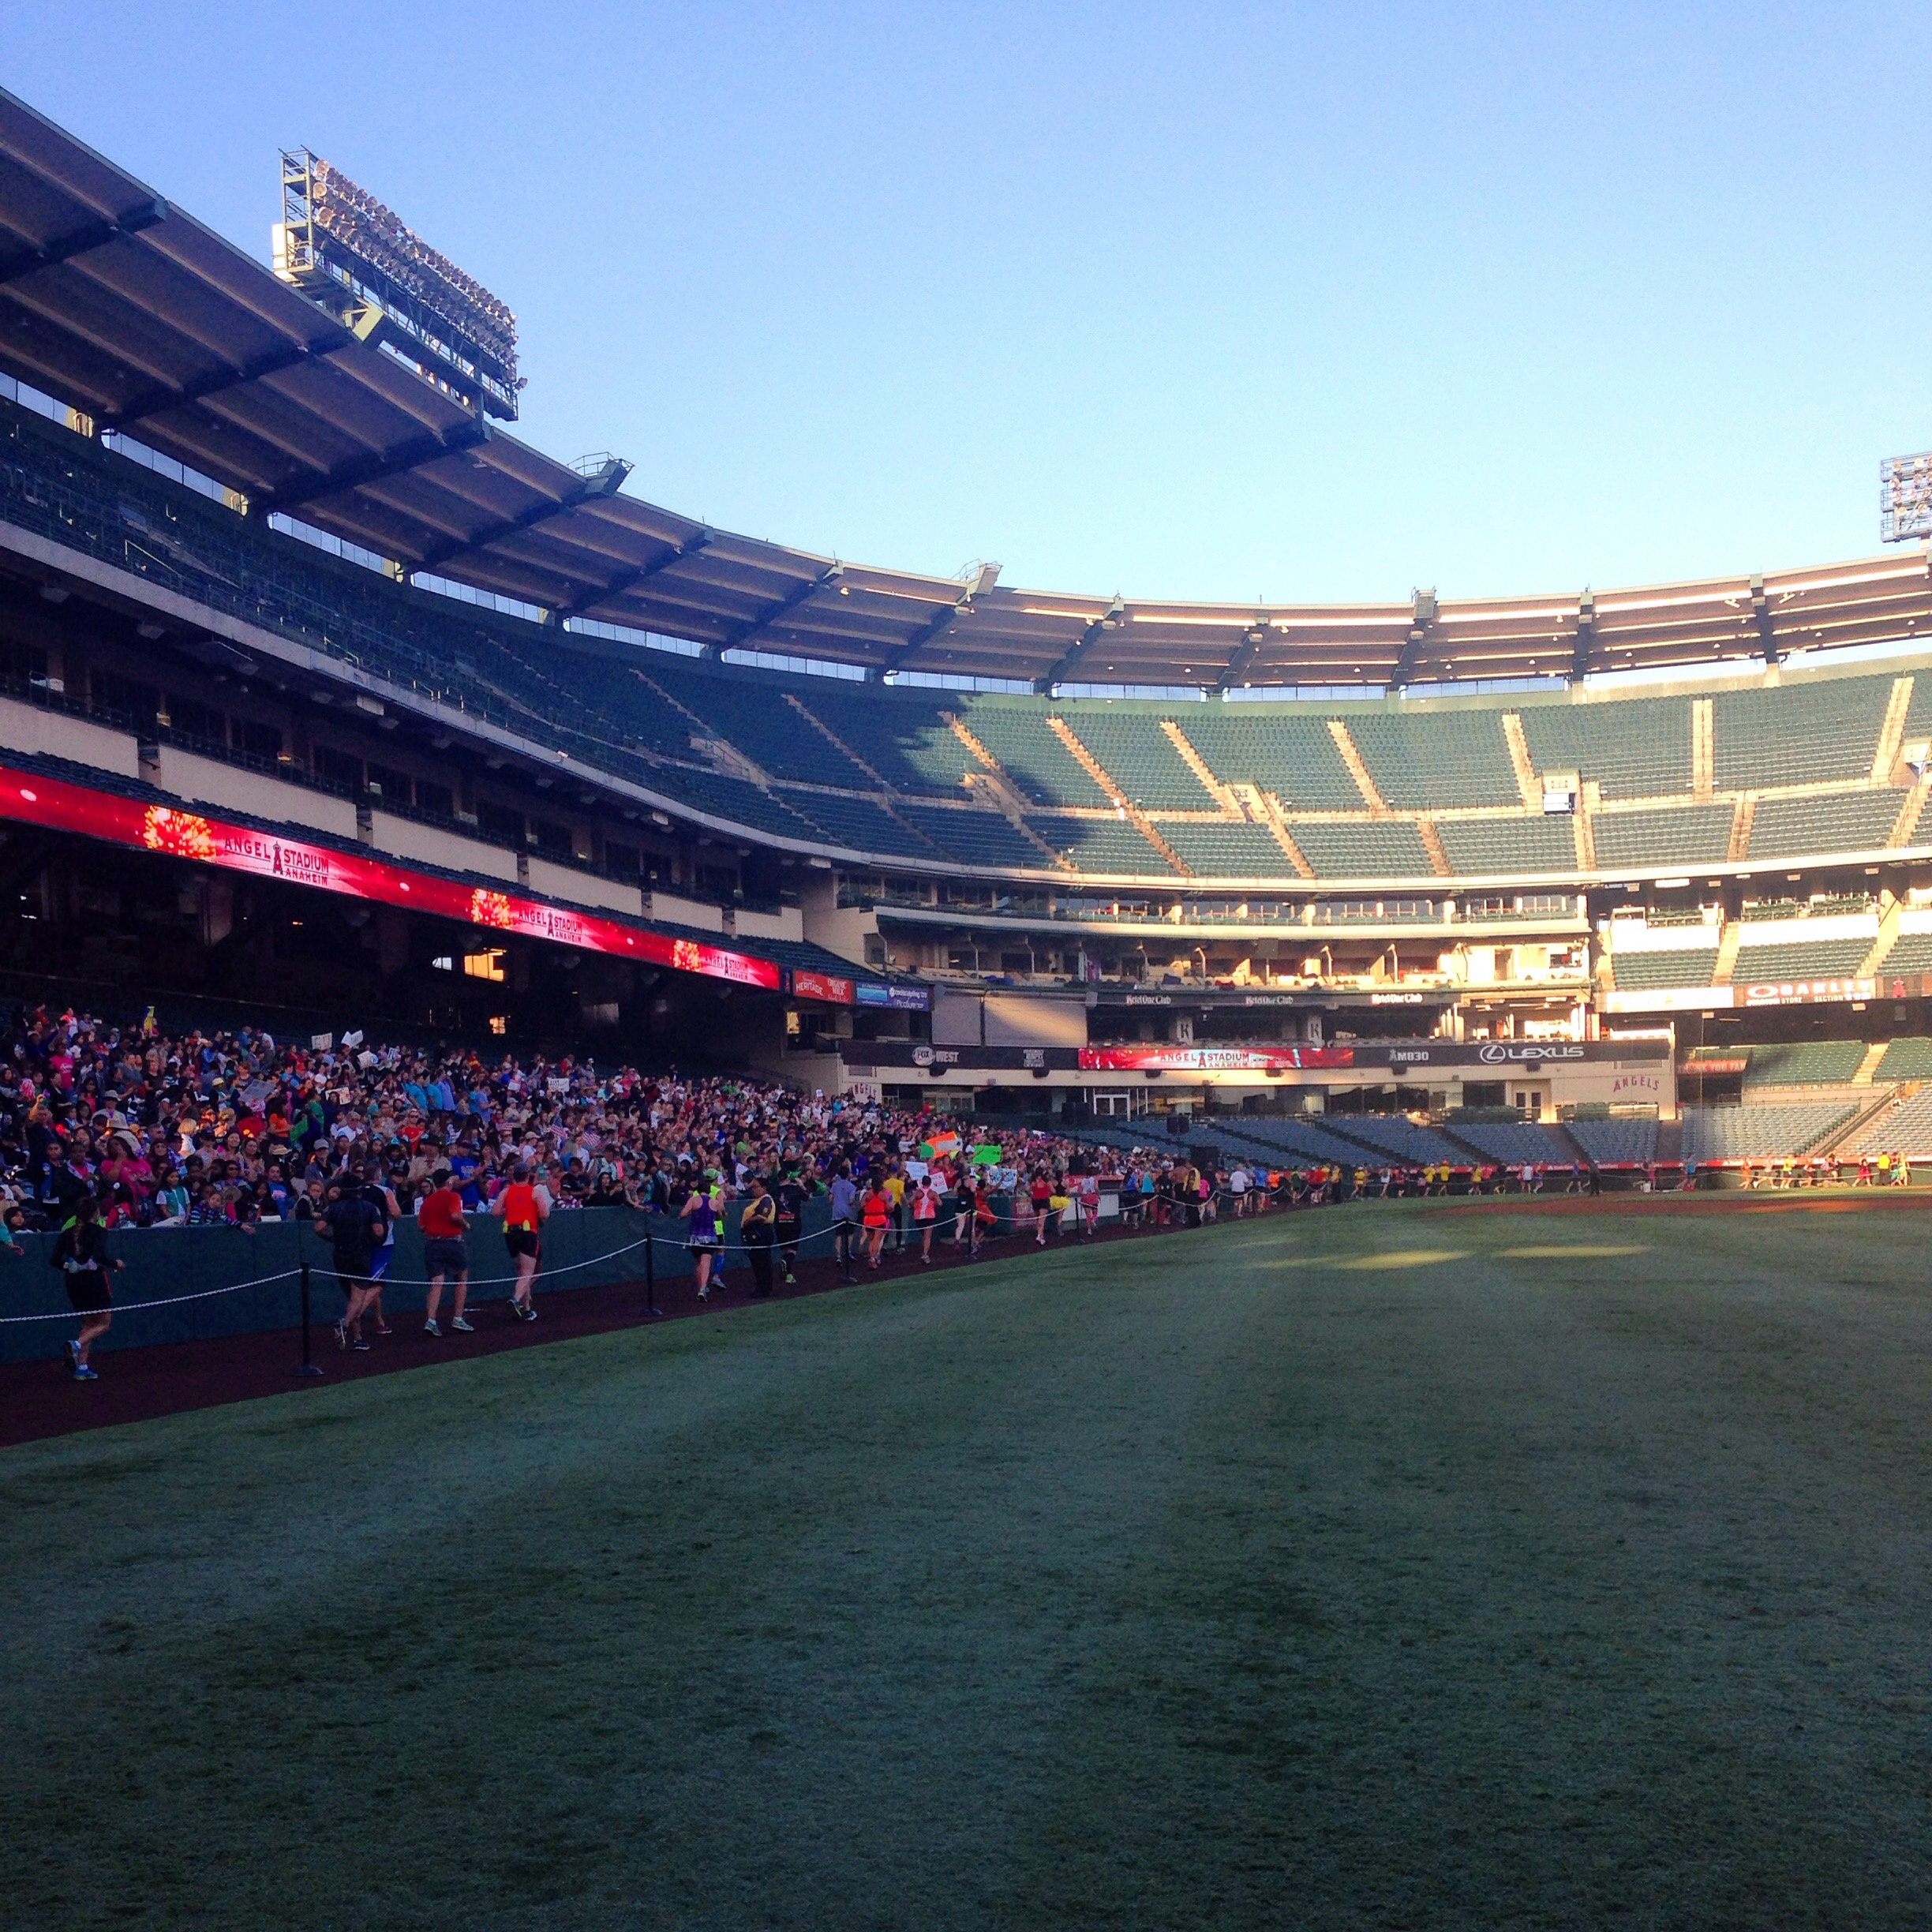 Angels Stadium of Anaheim during the 2015 Disneyland Half Marathon